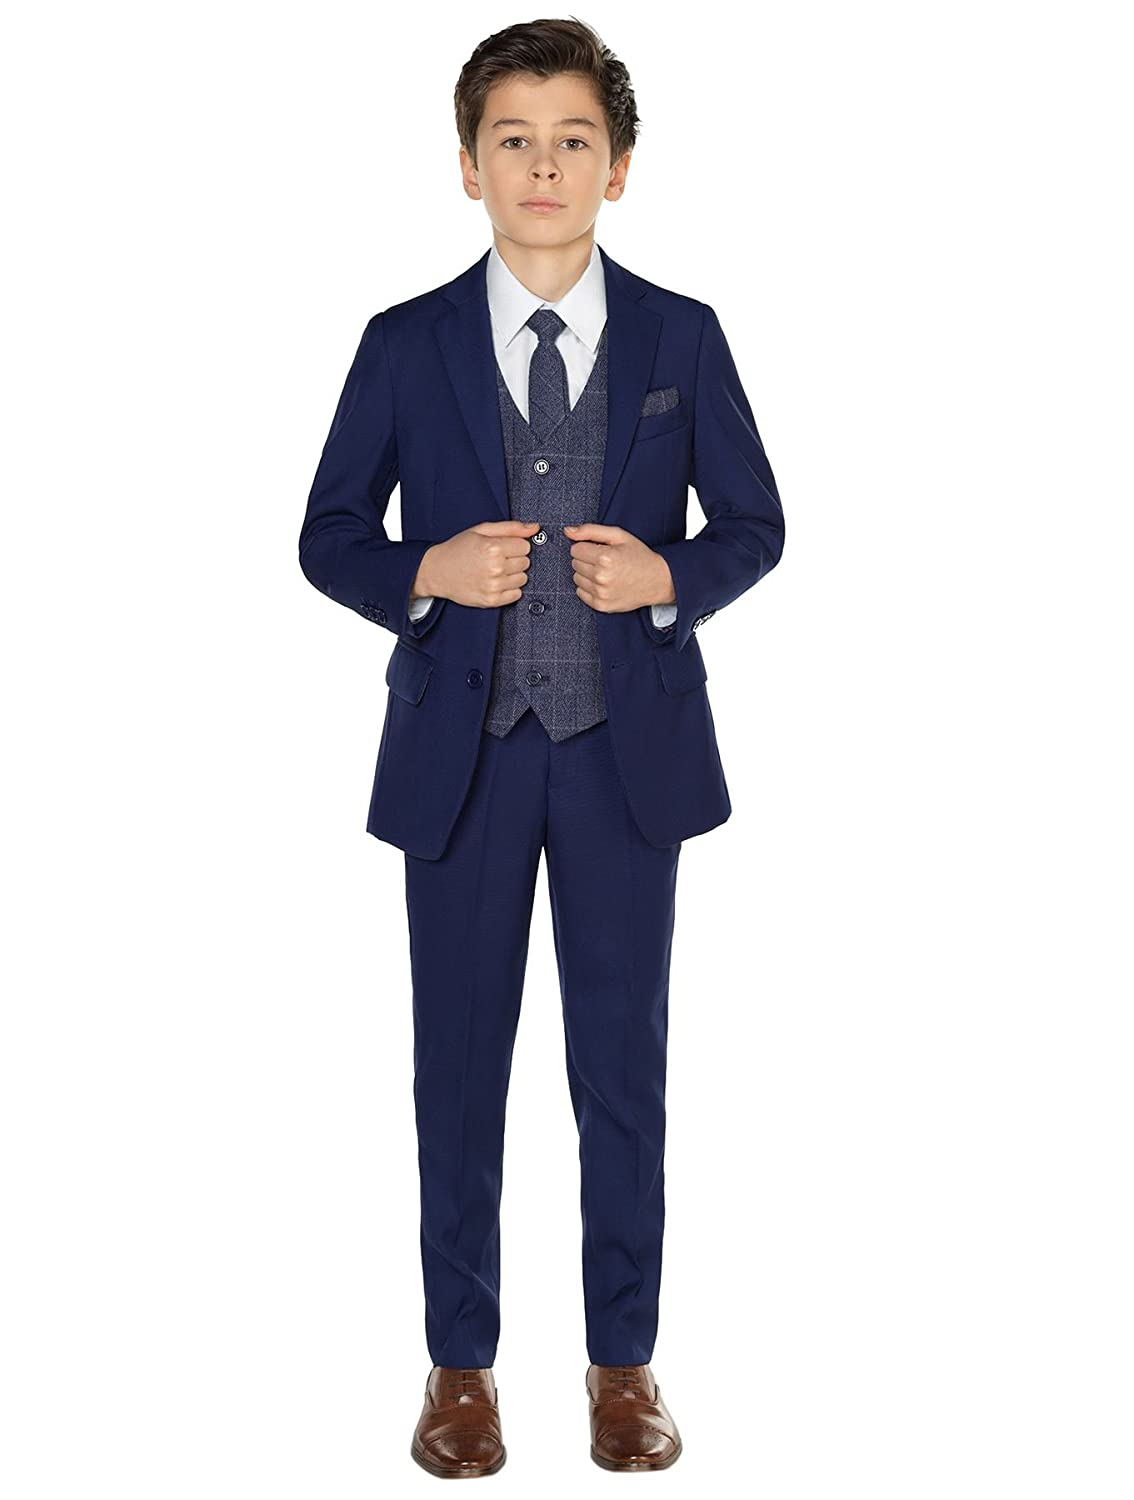 Paisley of London, kingsman Blue, Boys Suit, Page boy Suit, Grey or Navy Waistcoat, 1-14 Years 65464